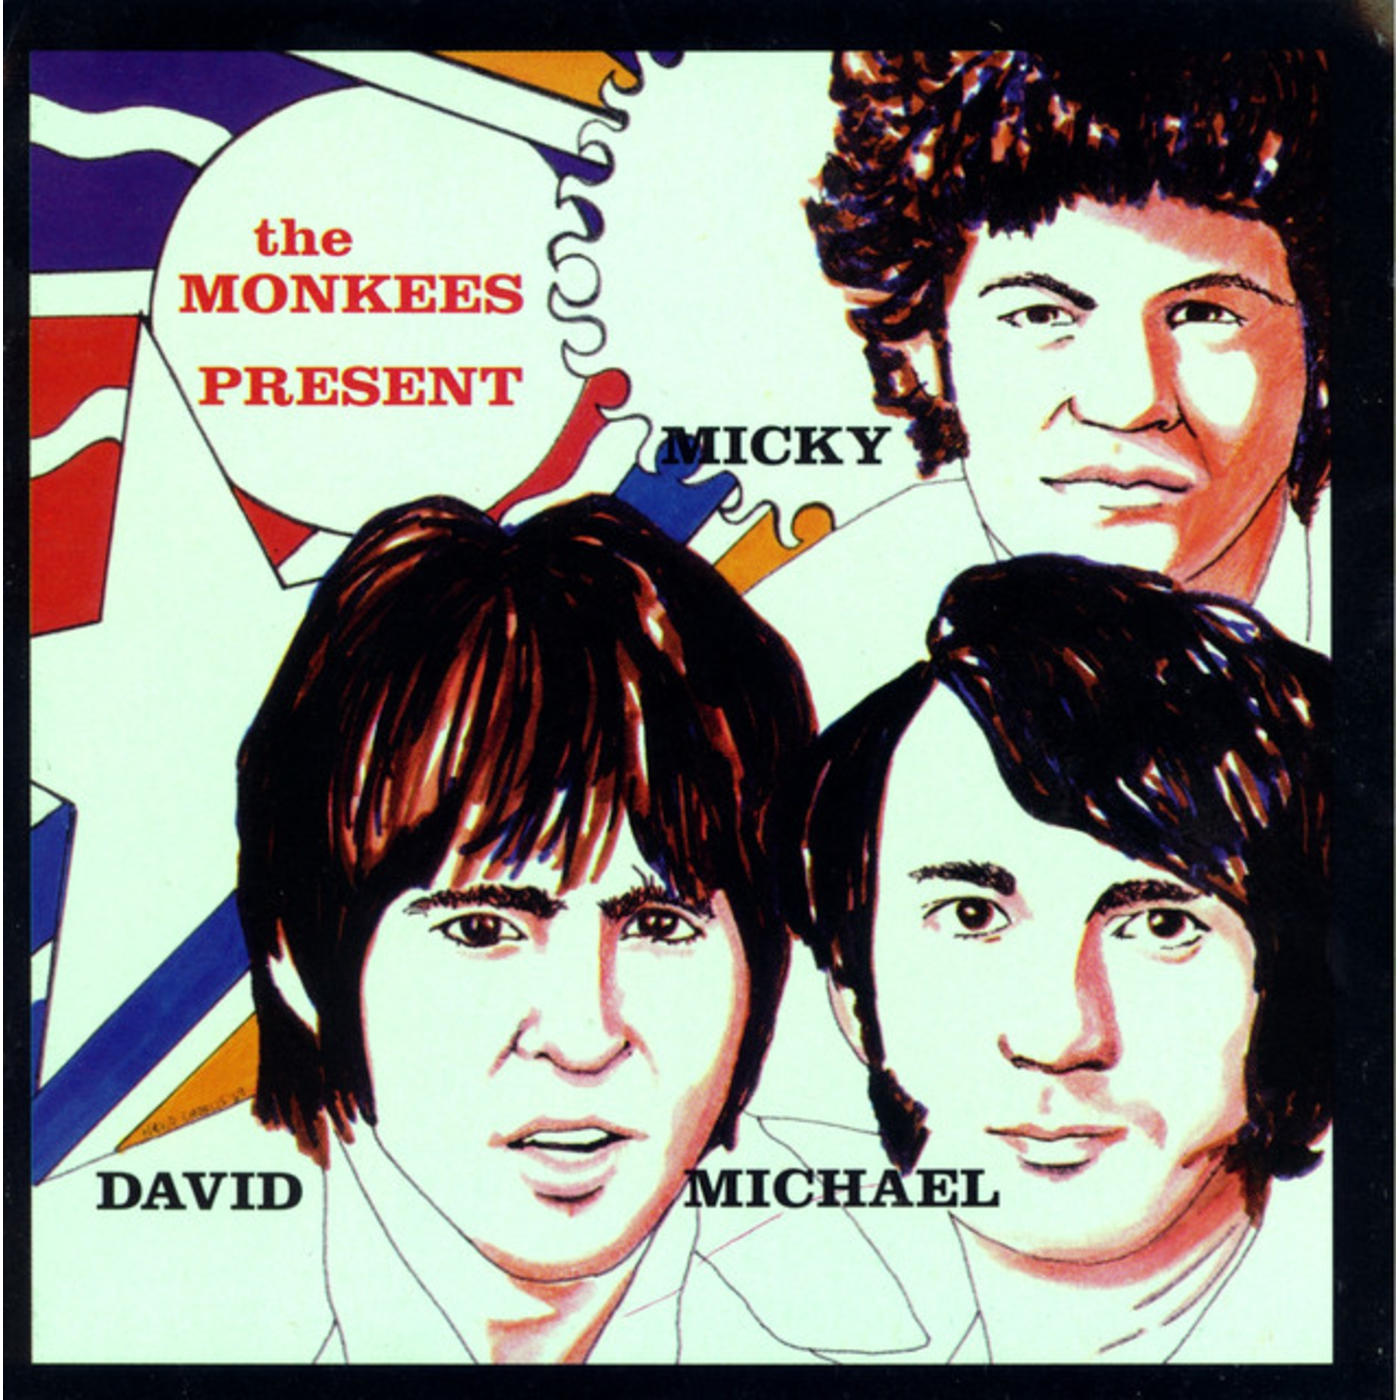 The Monkees Present: Micky, David & Michael